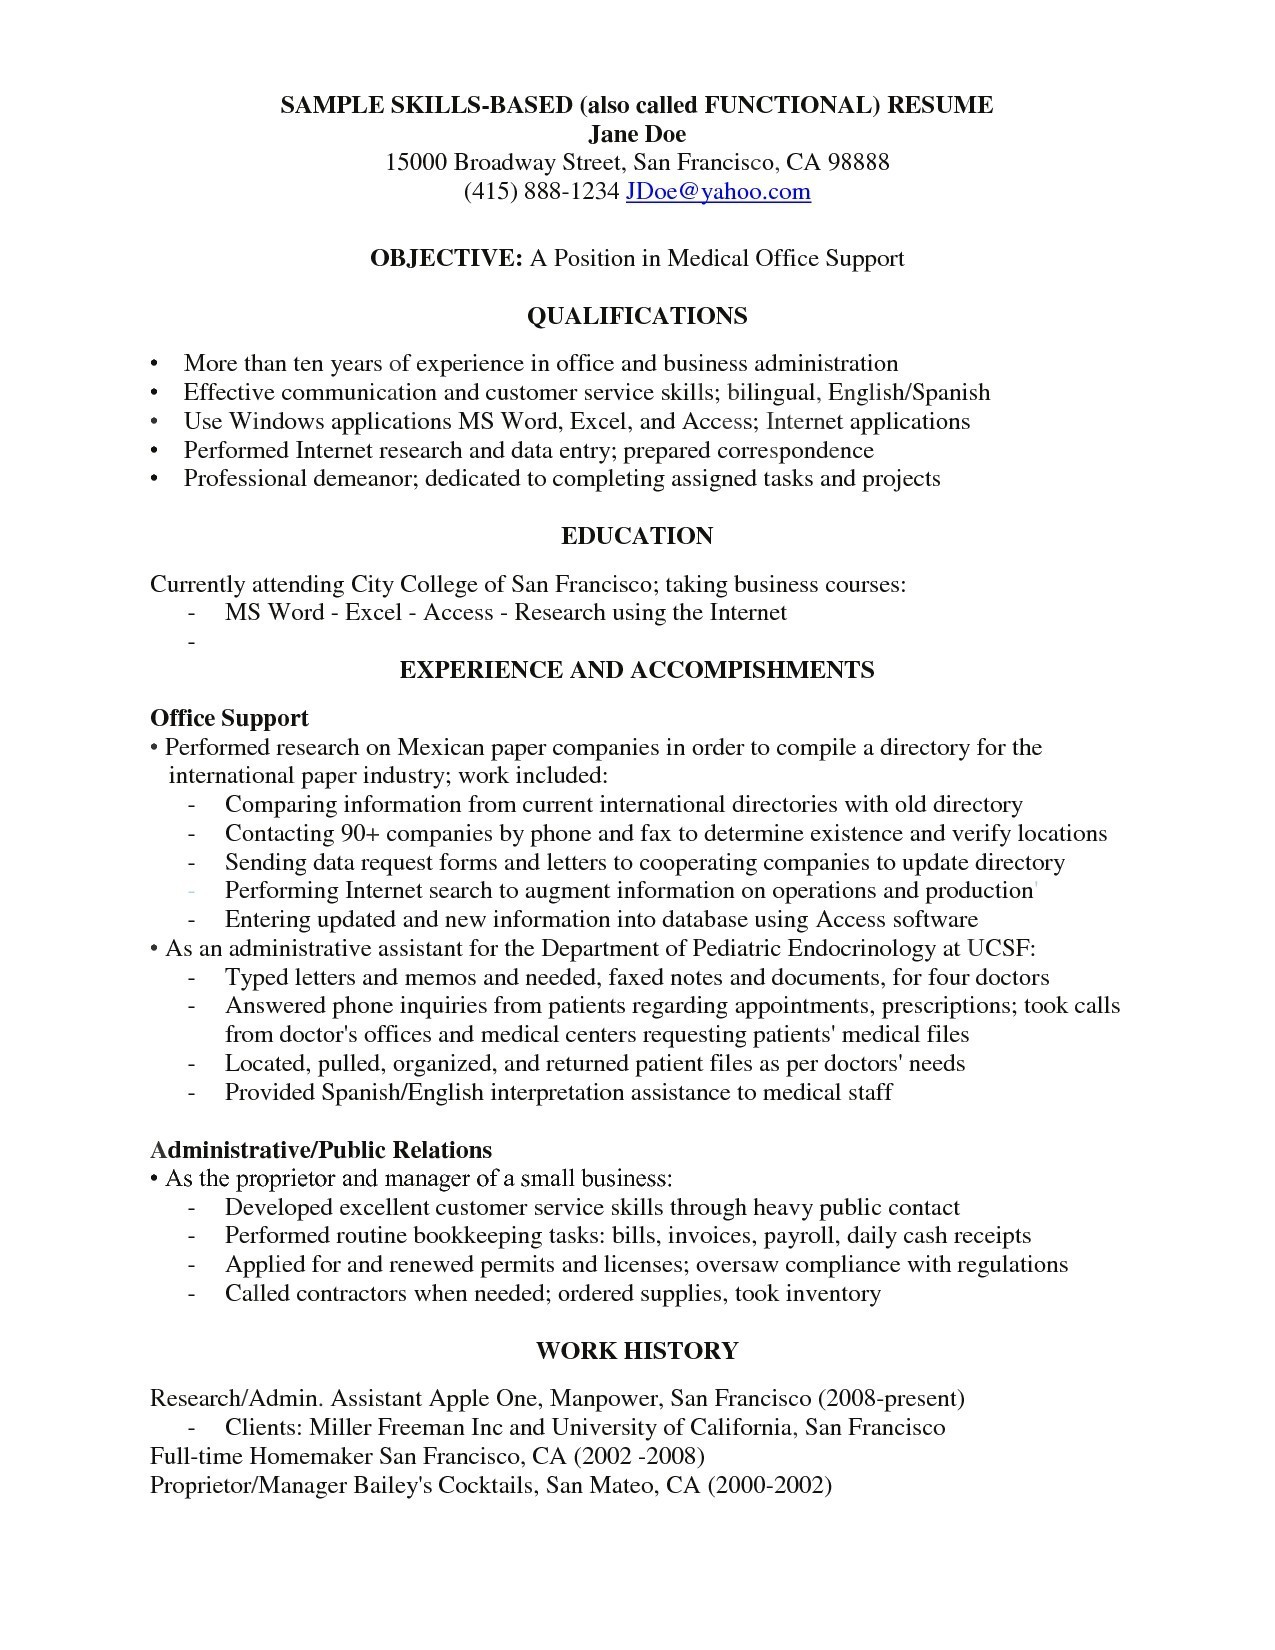 Office Equipment Skills for Resume - Paralegal Skills and attributes